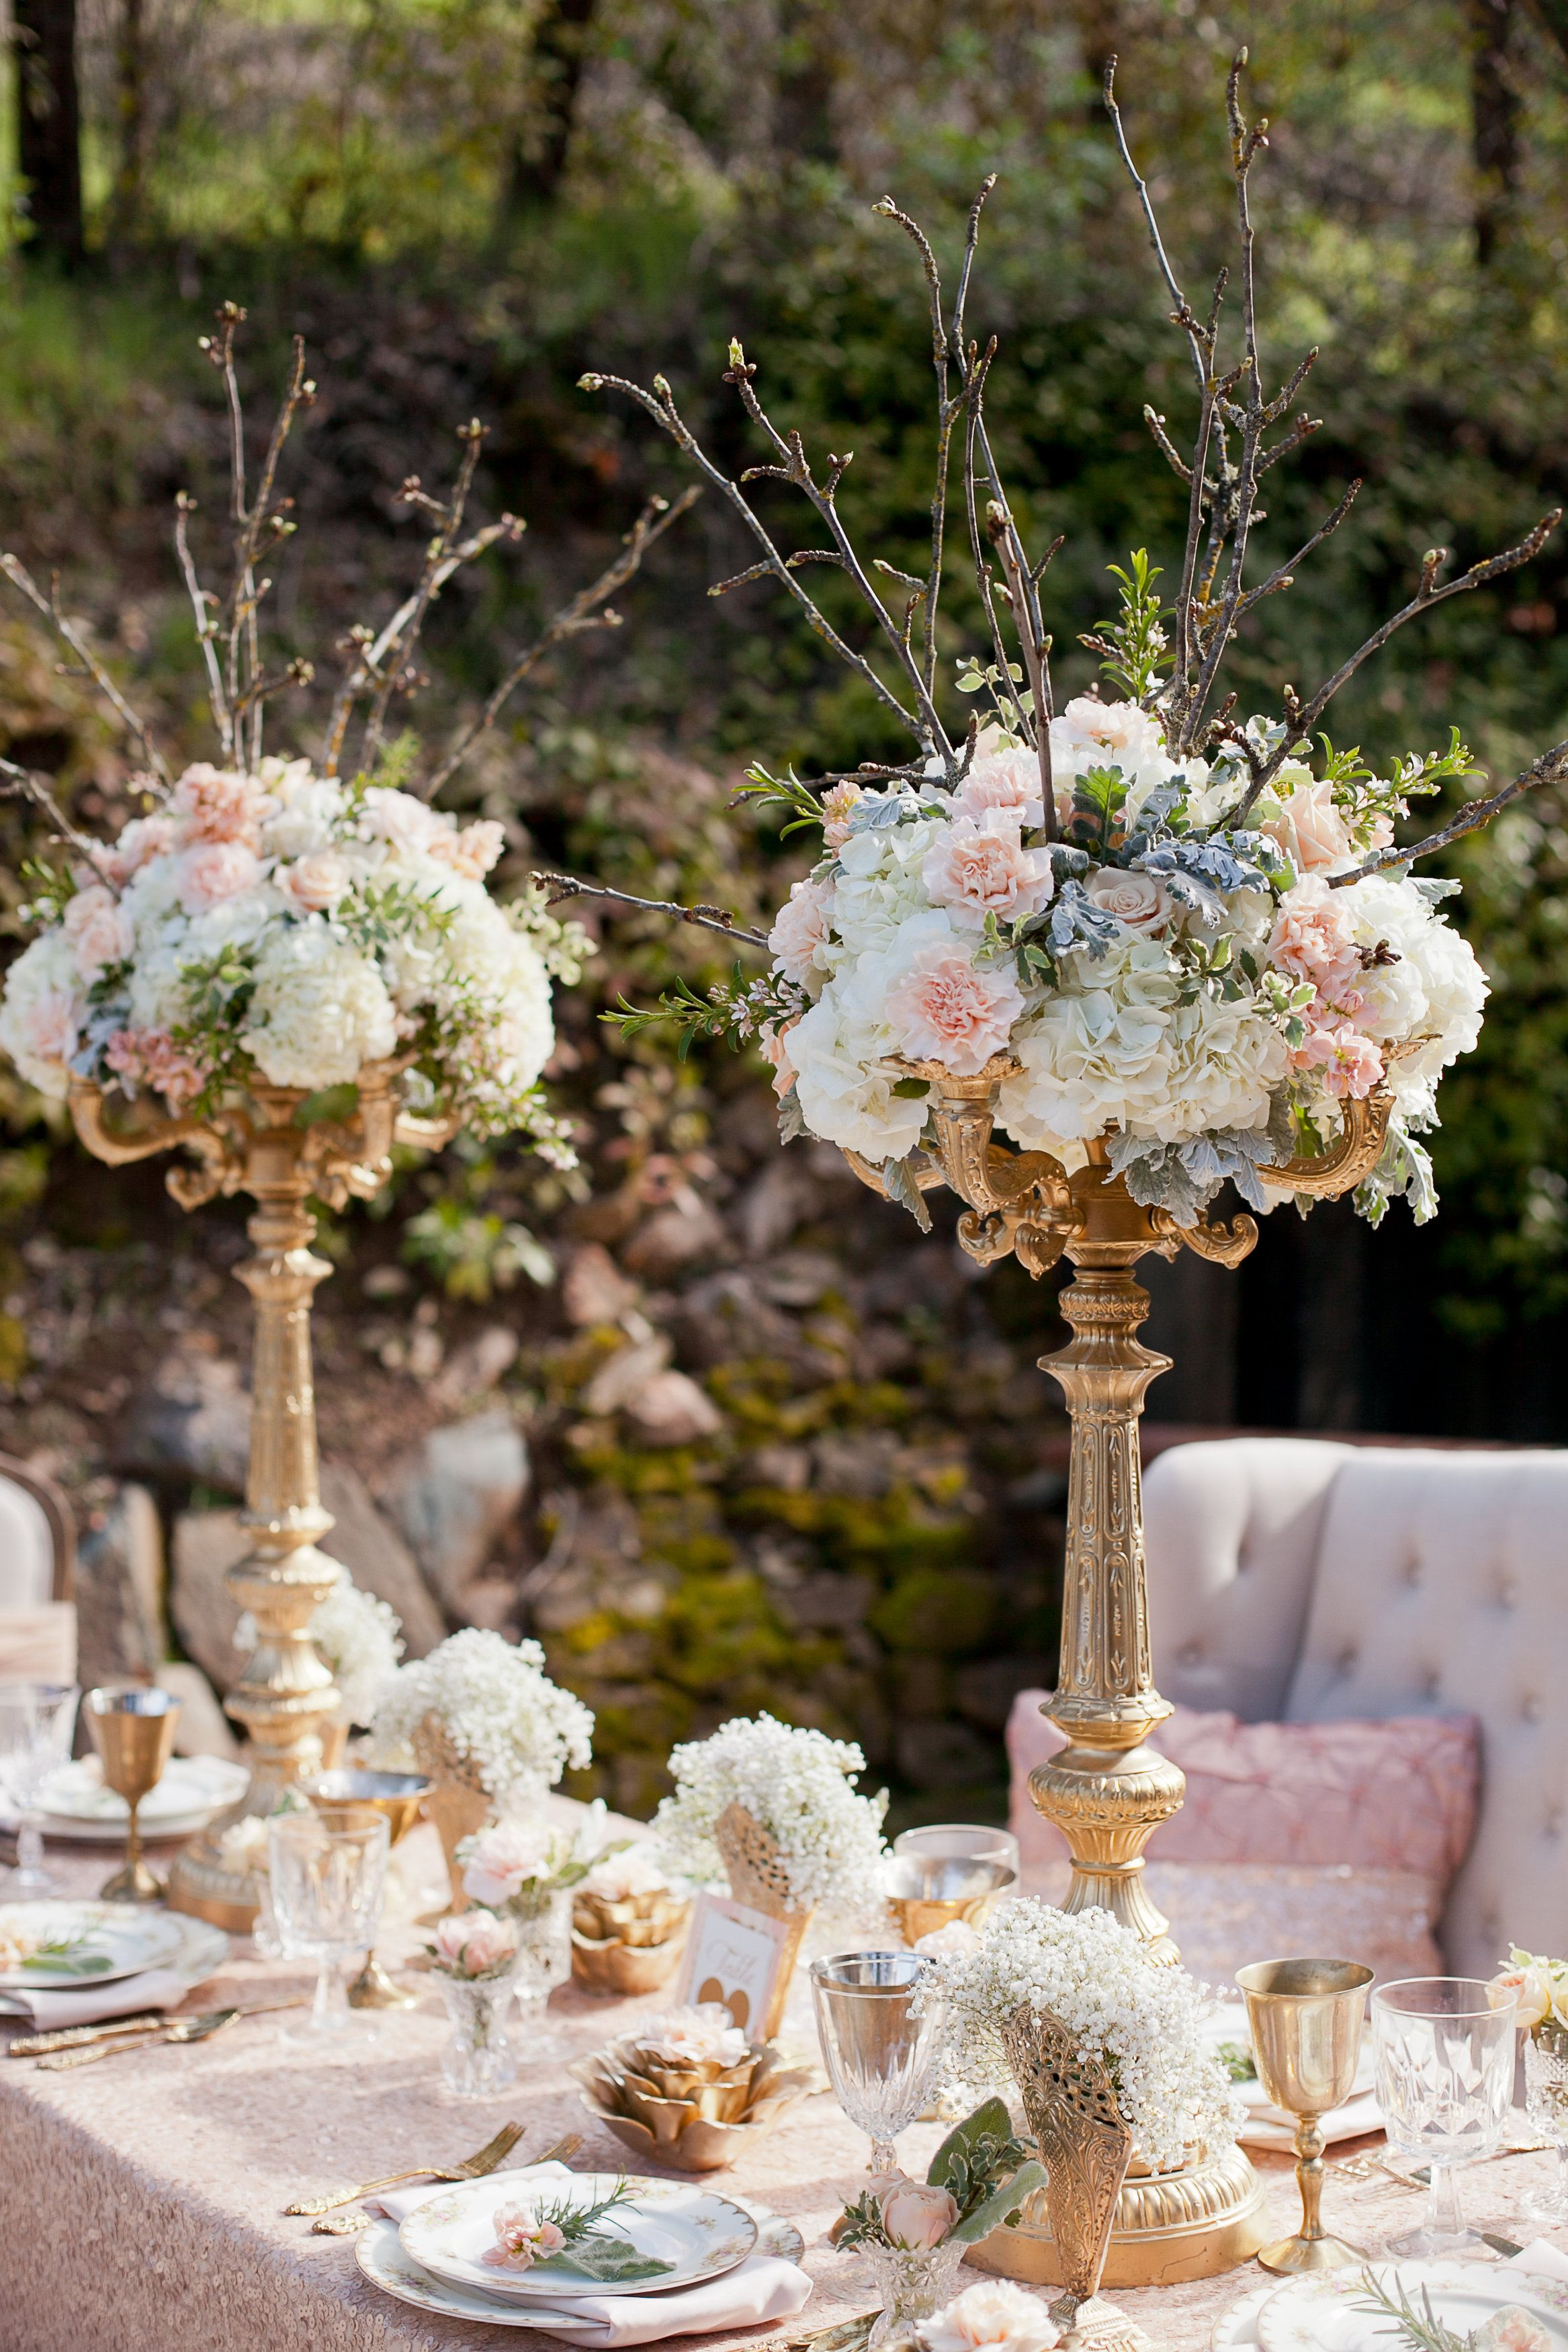 Wedding decorations black and gold  Could paint my black stands like this Gold candelabras for height